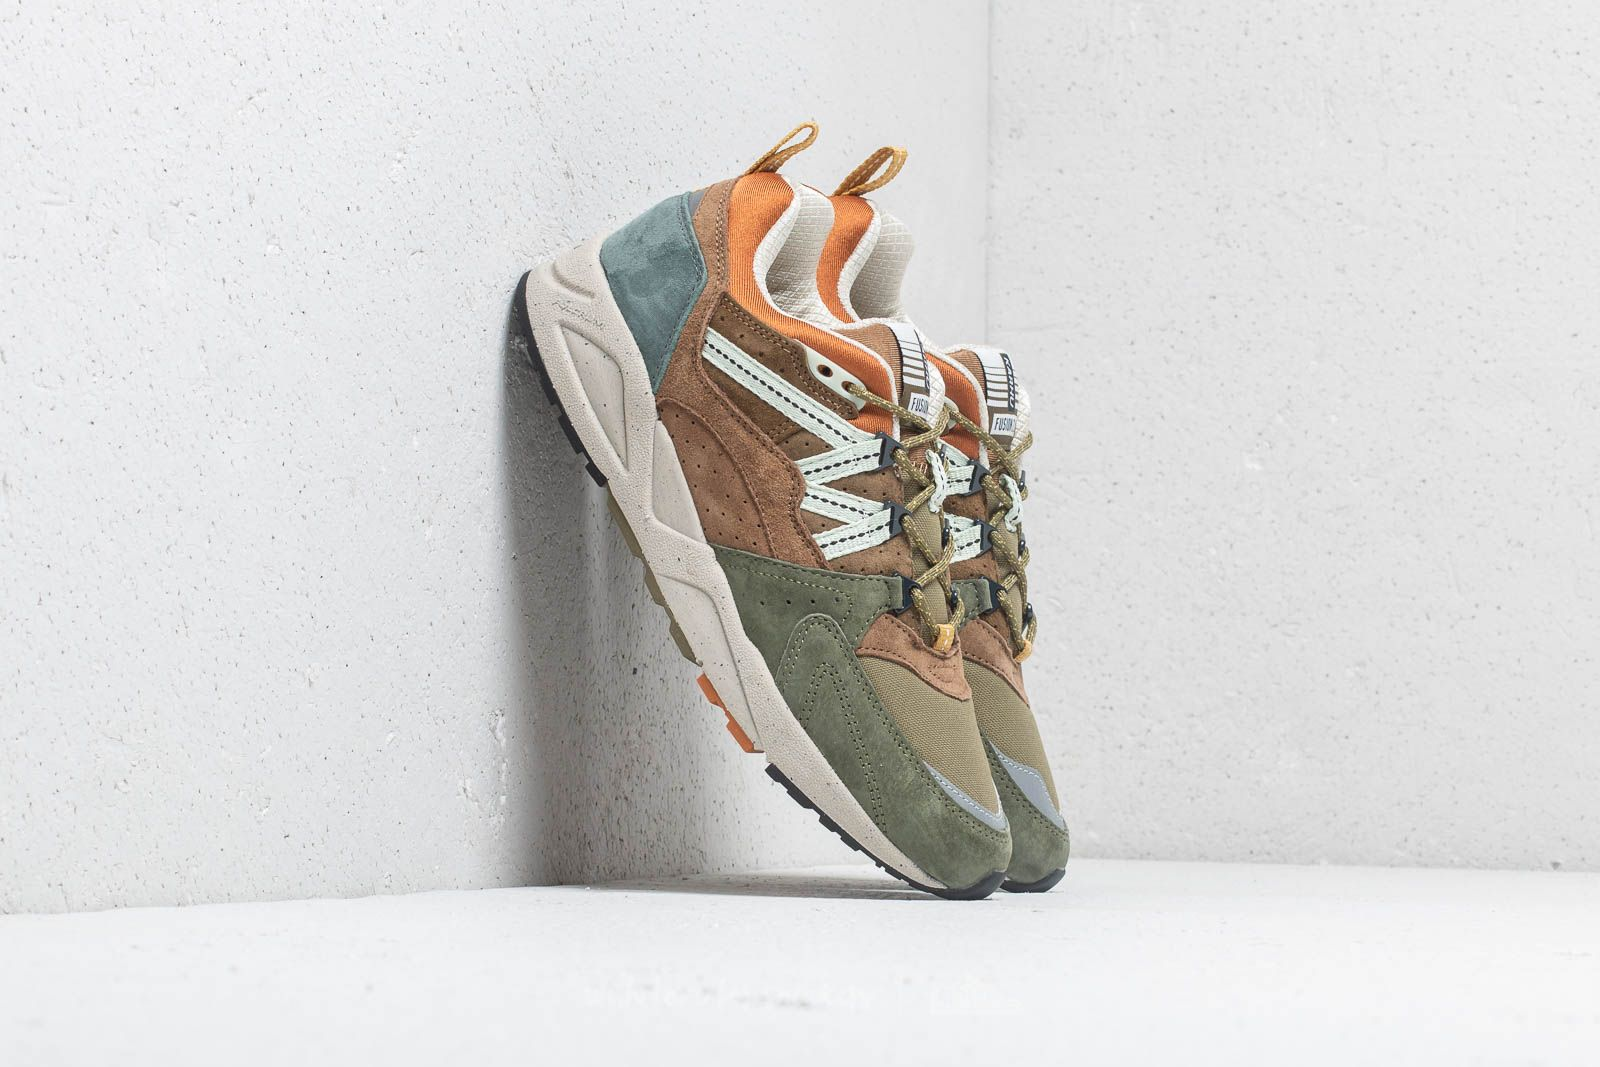 Karhu Fusion 2.0 Butternut/ Capoulet Olive